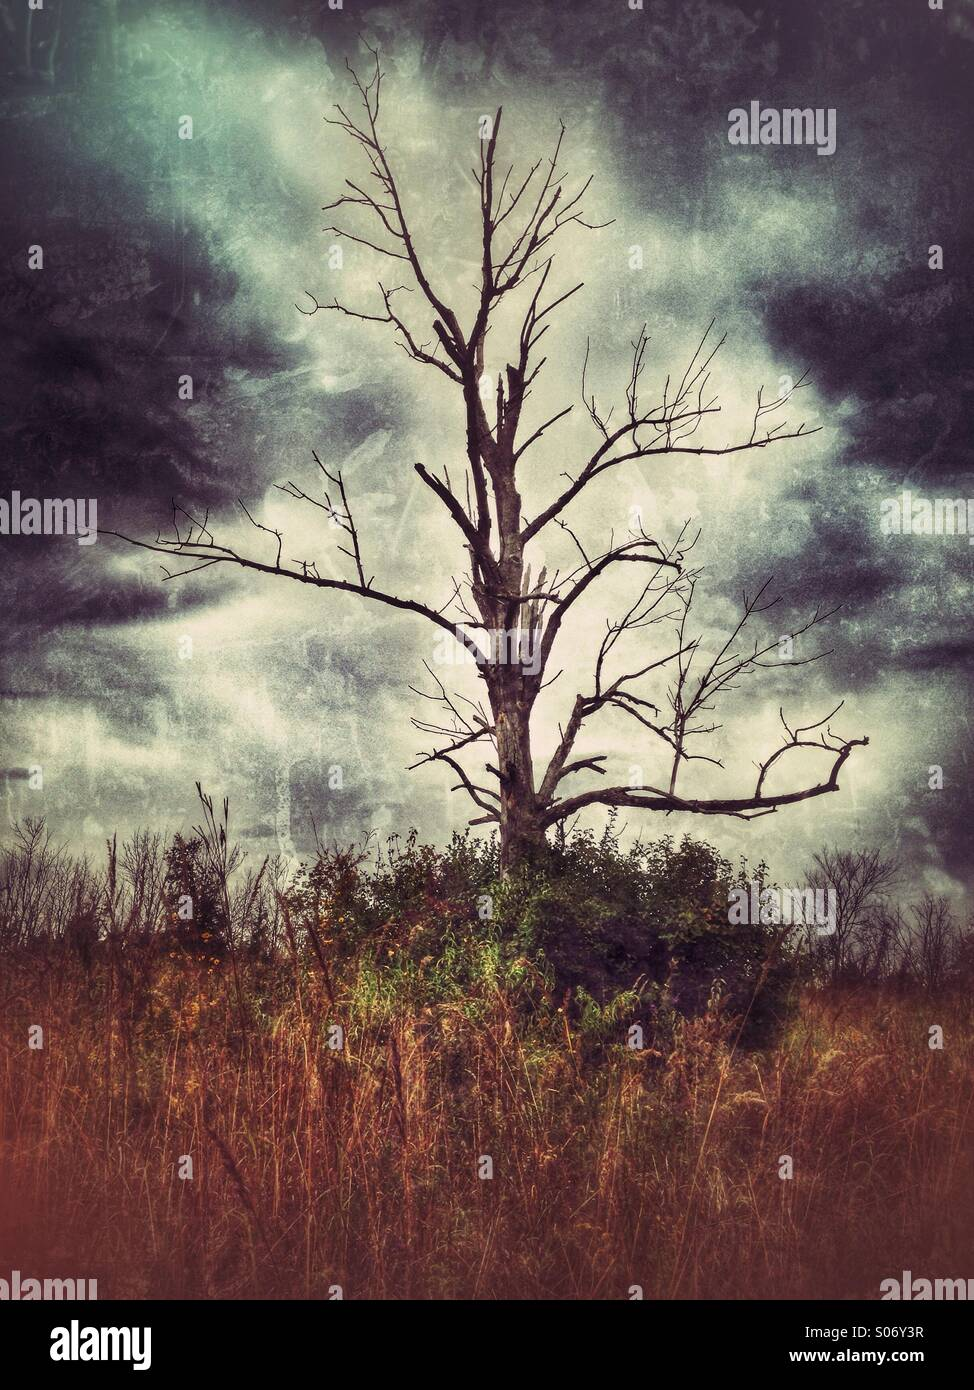 A bare tree against an ominous sky. - Stock Image